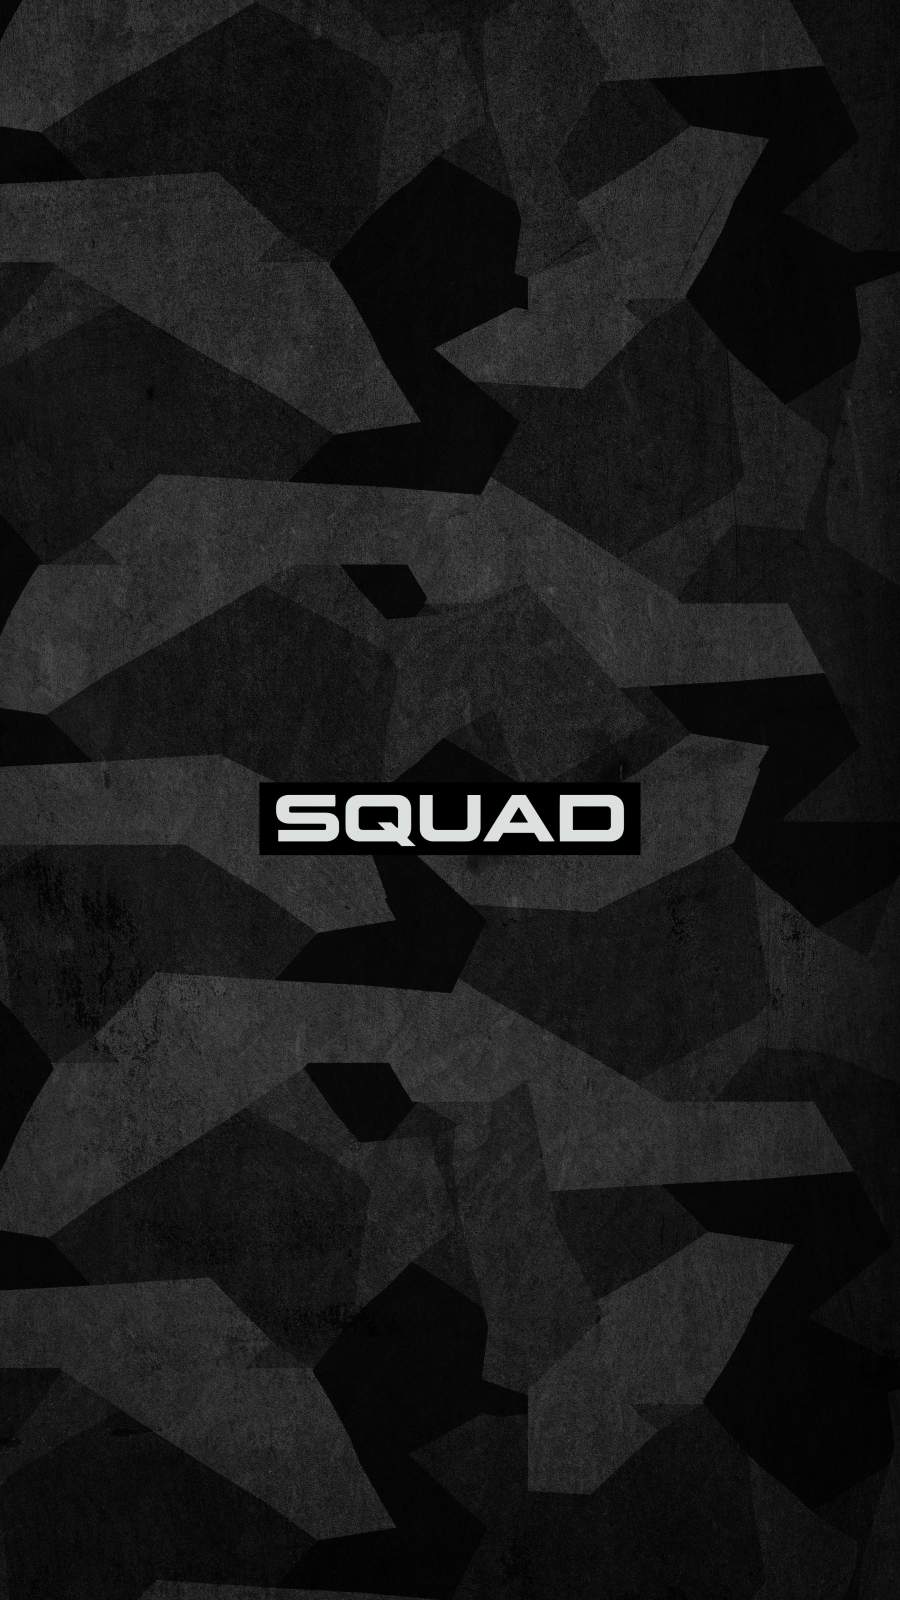 Black Camouflage Army Squad iPhone Wallpaper